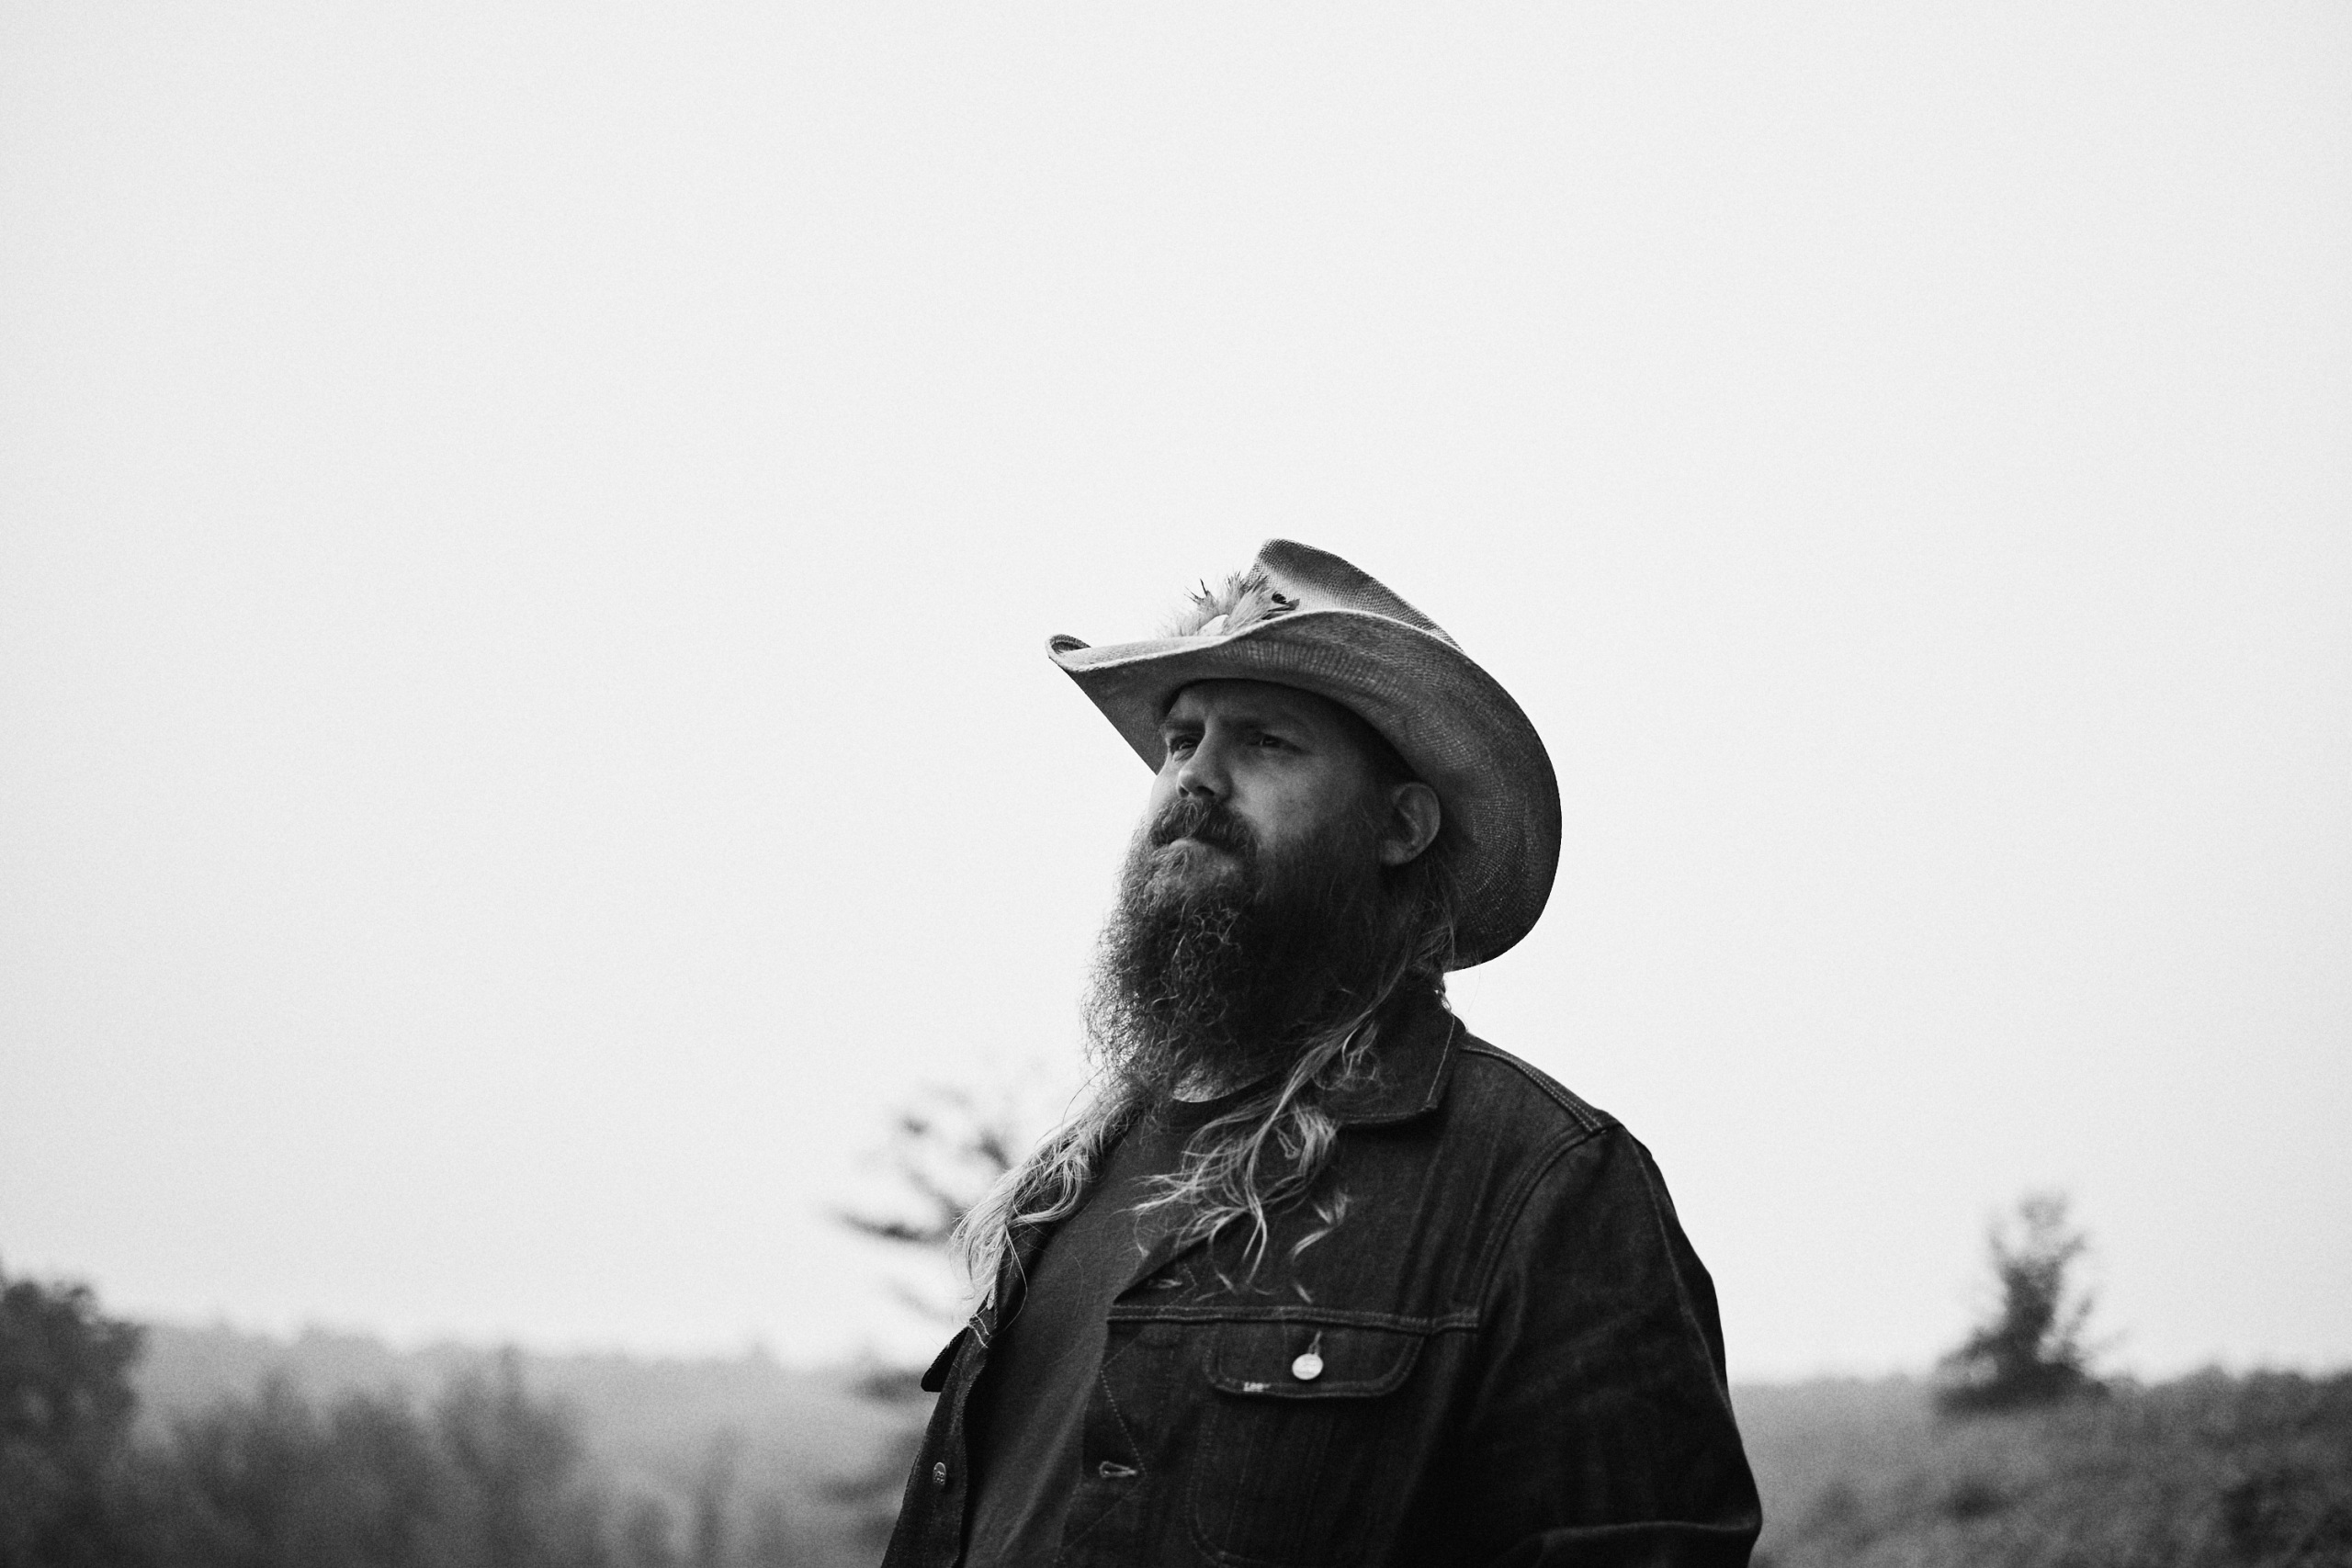 CHRIS STAPLETON MISSES THE ROAD BUT HAS LOVED SPENDING TIME WITH HIS FAMILY OVER THE PAST YEAR.